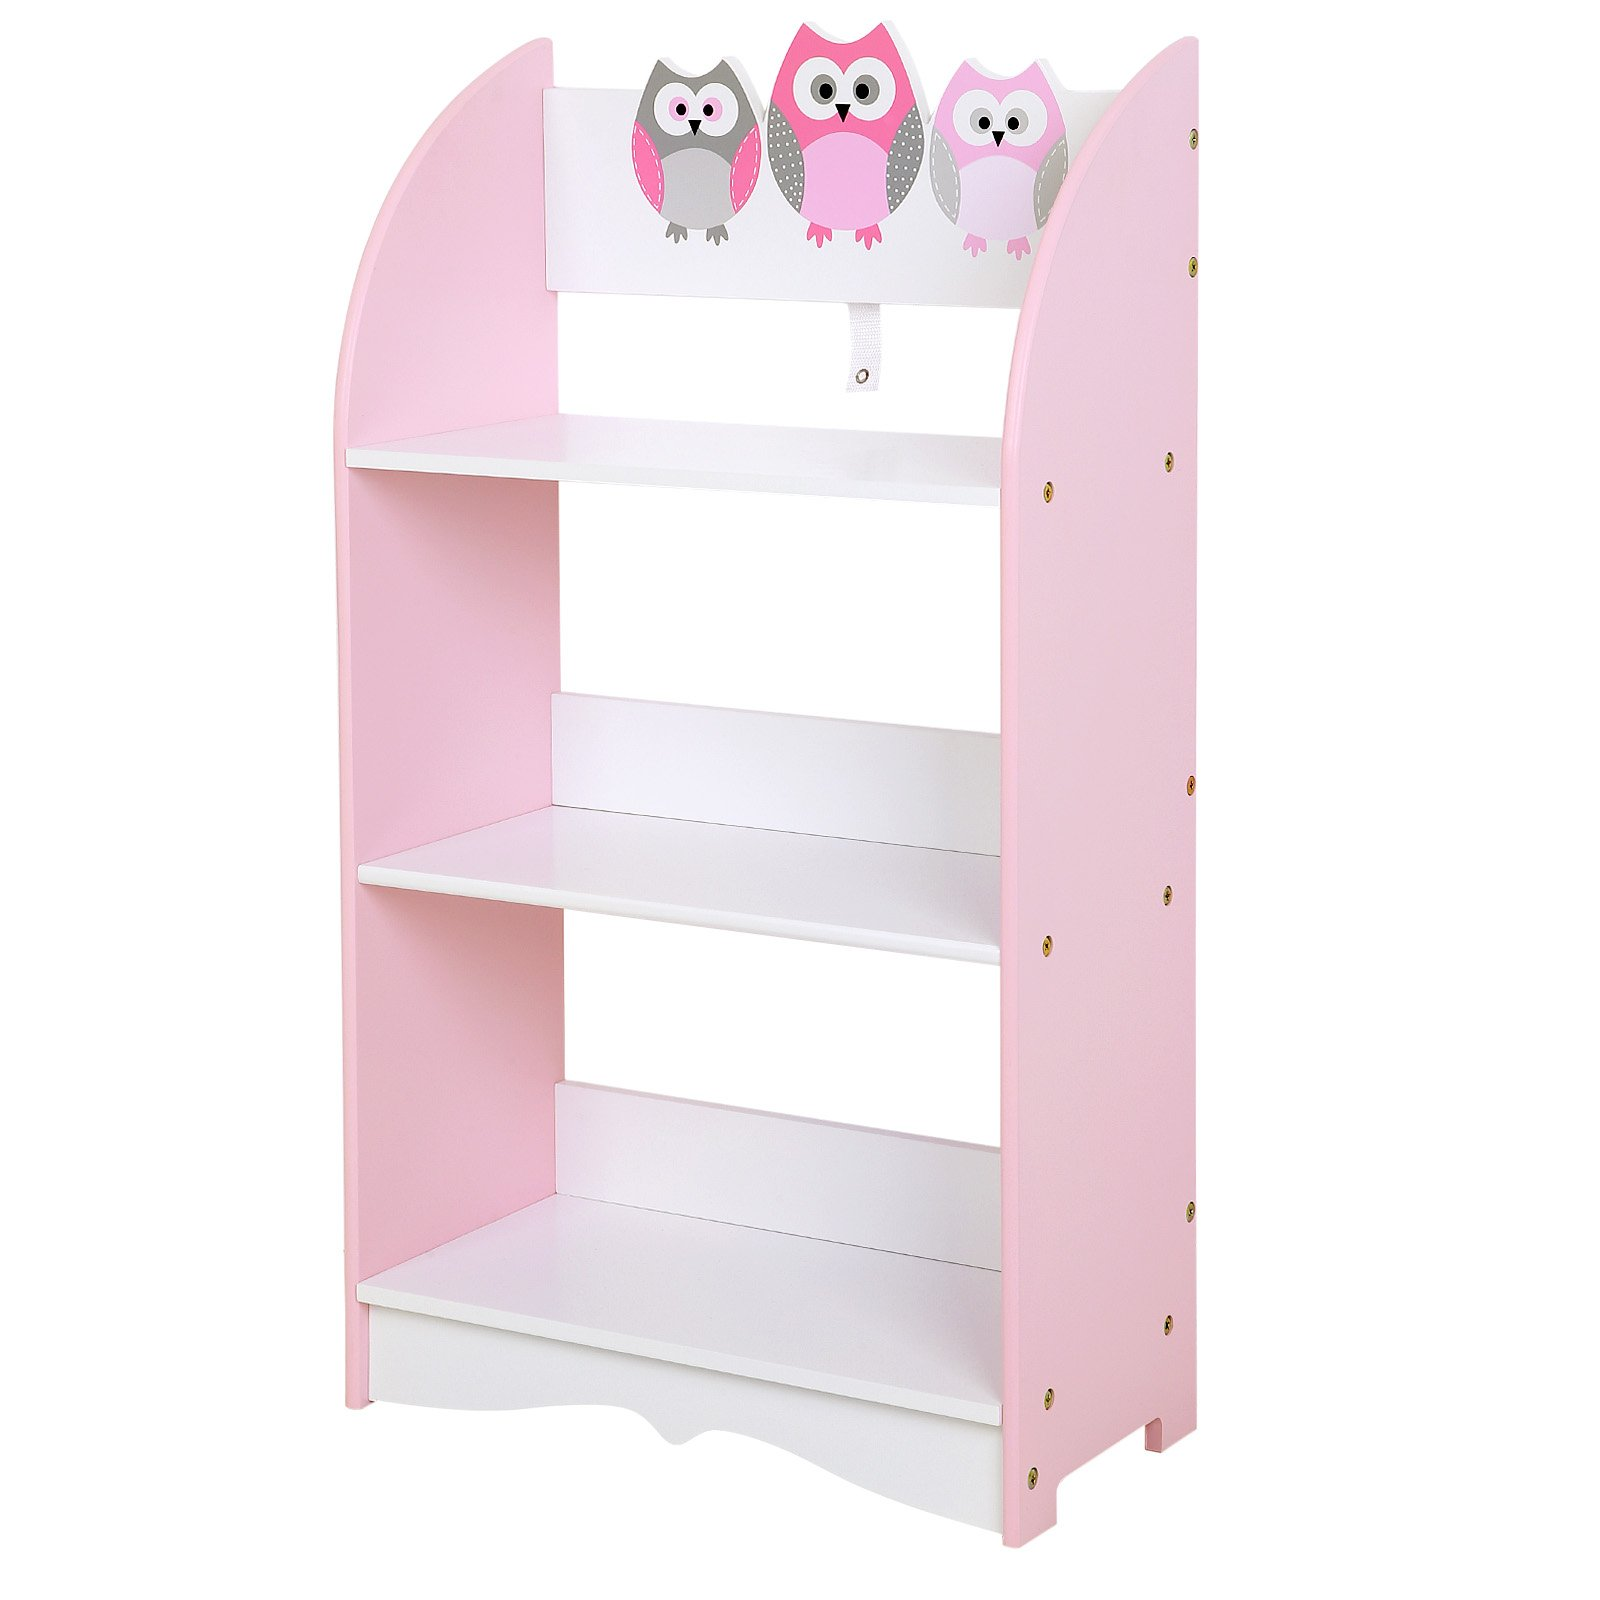 SONGMICS Kid Book Shelf for Girls 3 Book Shelves for Childs Bedroom Playroom Pink and White ULKF03PK